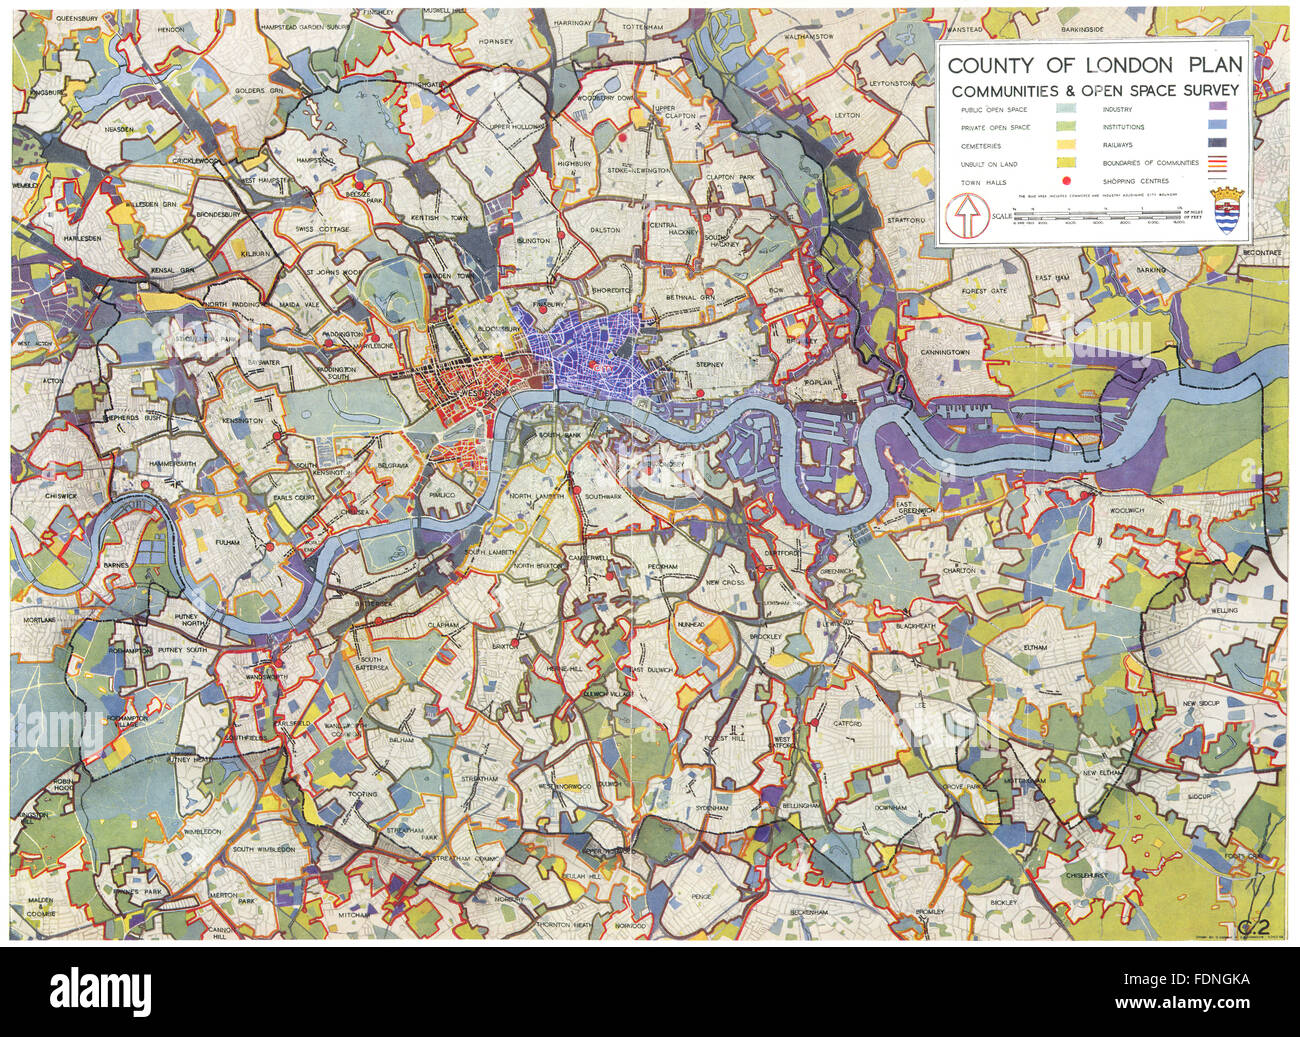 LONDON: County of London plan communities & open space survey, 1943 old map - Stock Image